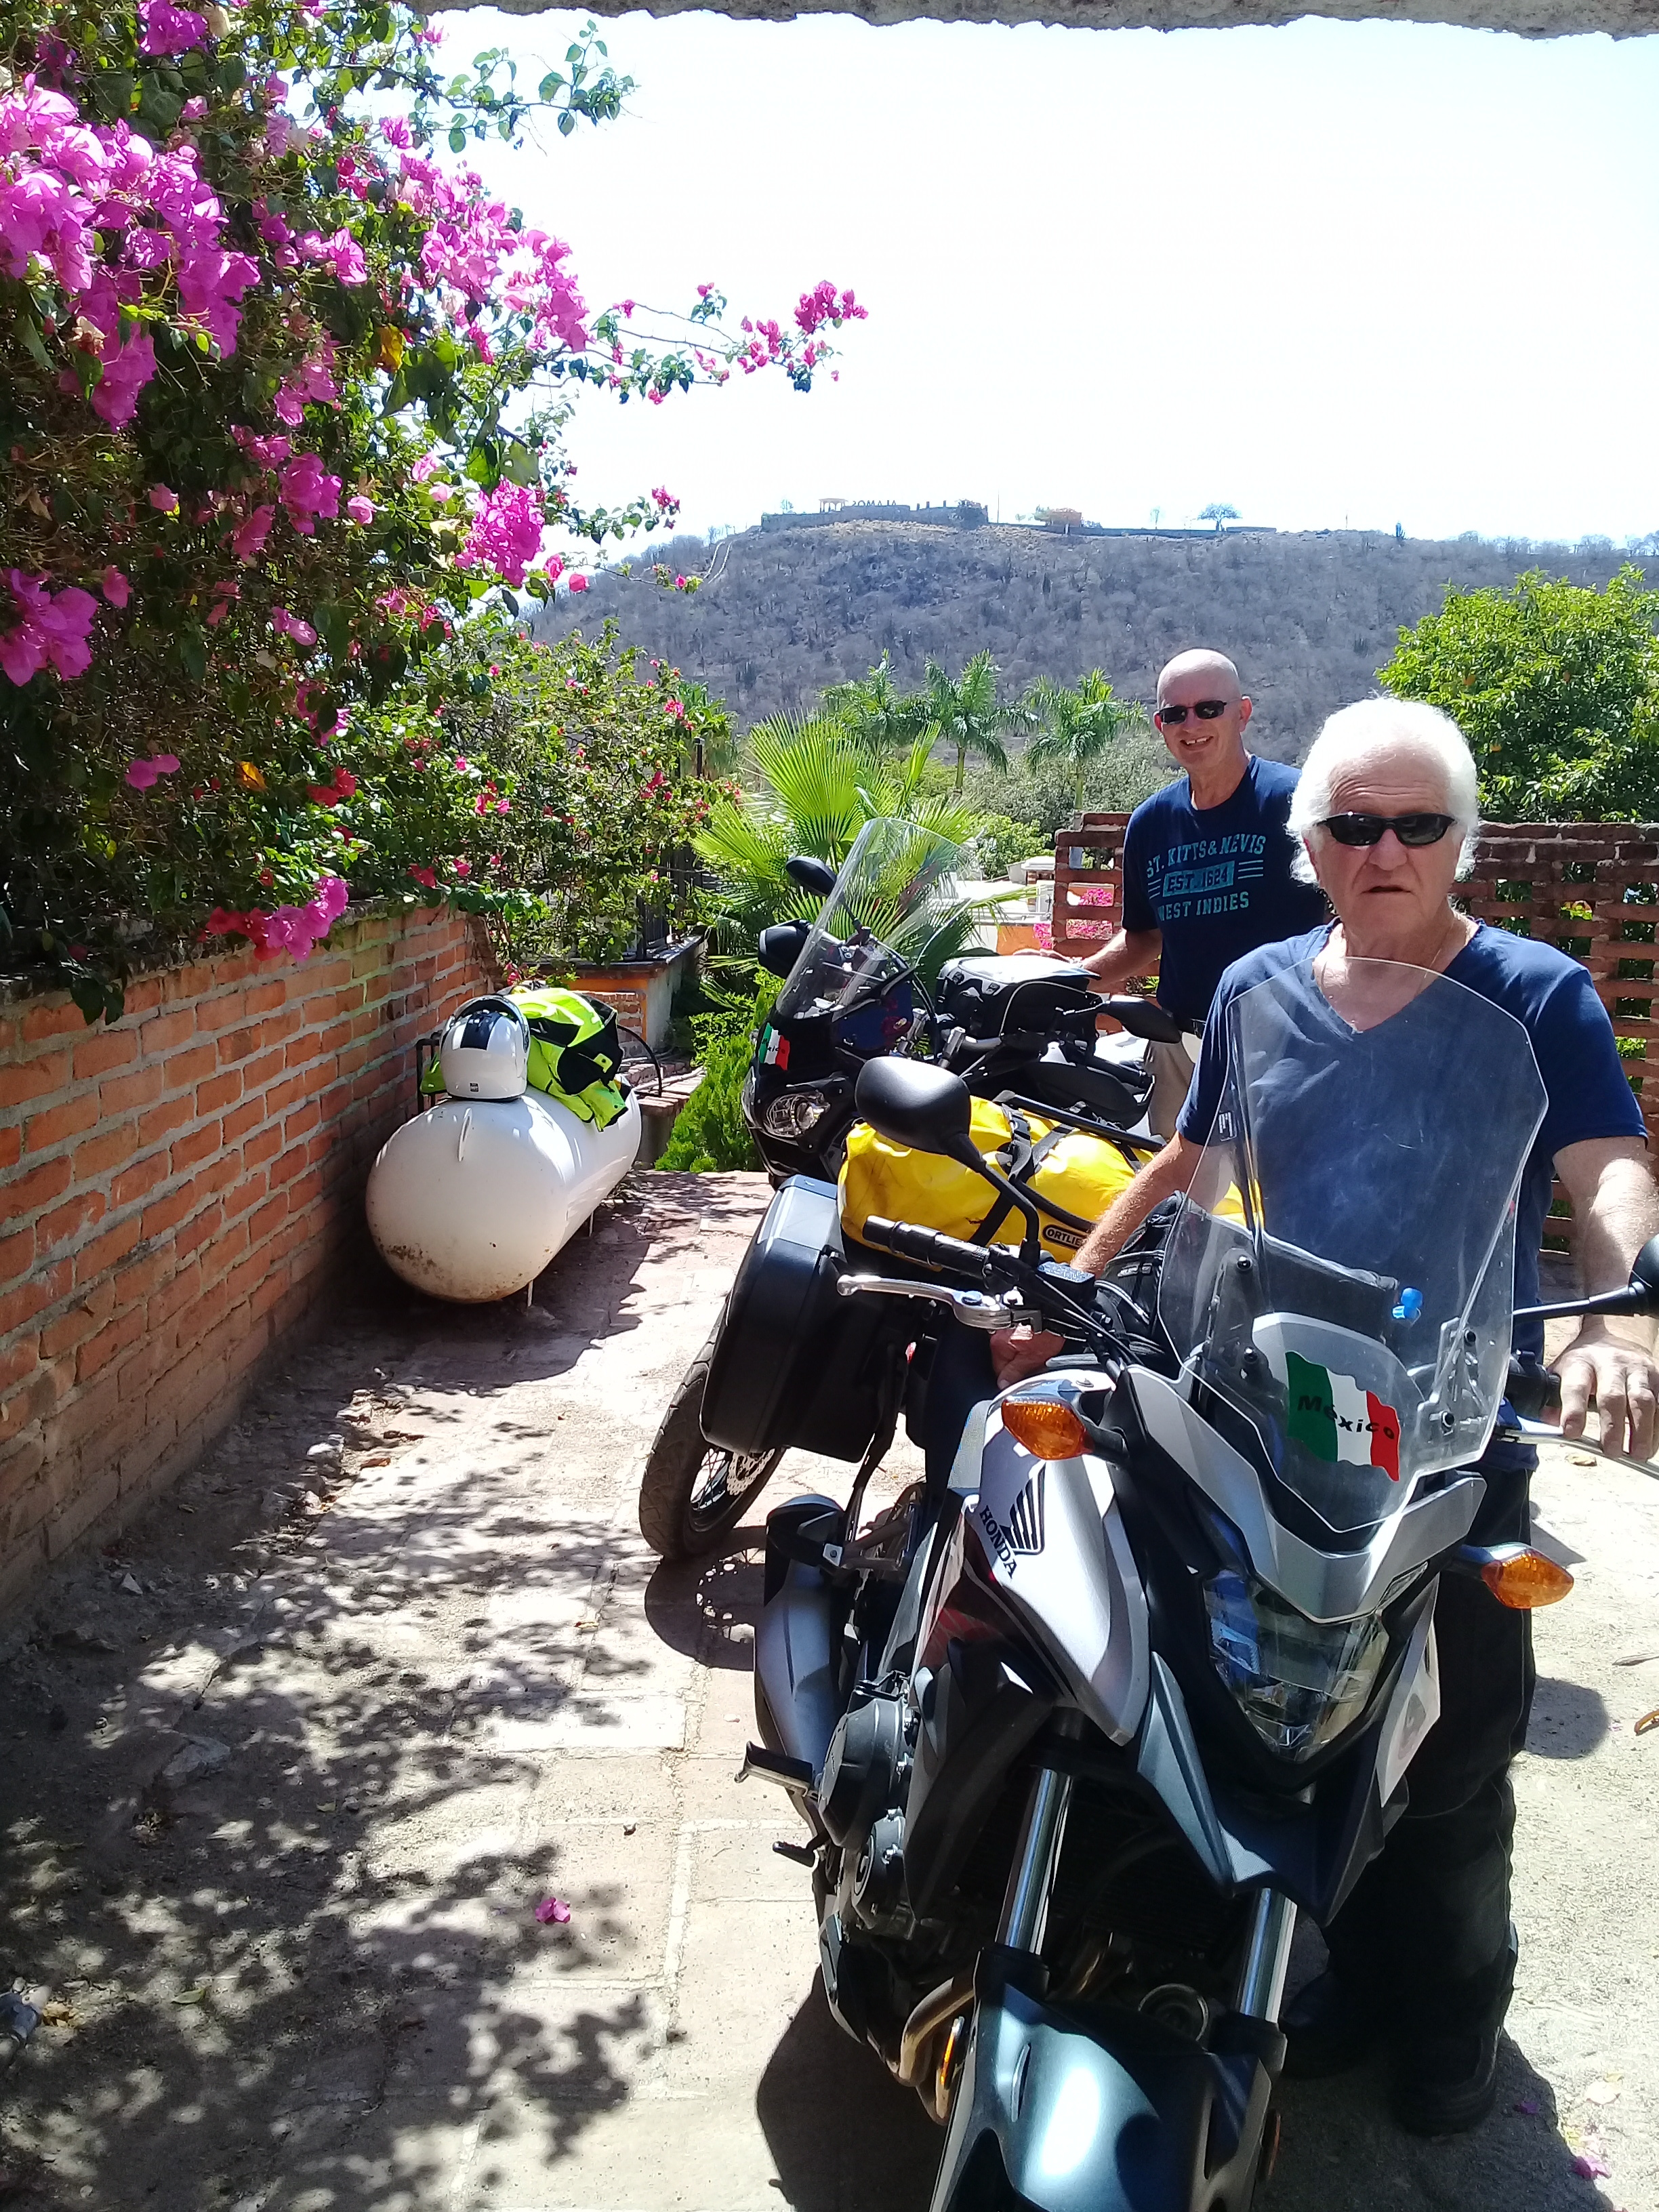 Private parking for two gentlemen bikers after 4,000 miles